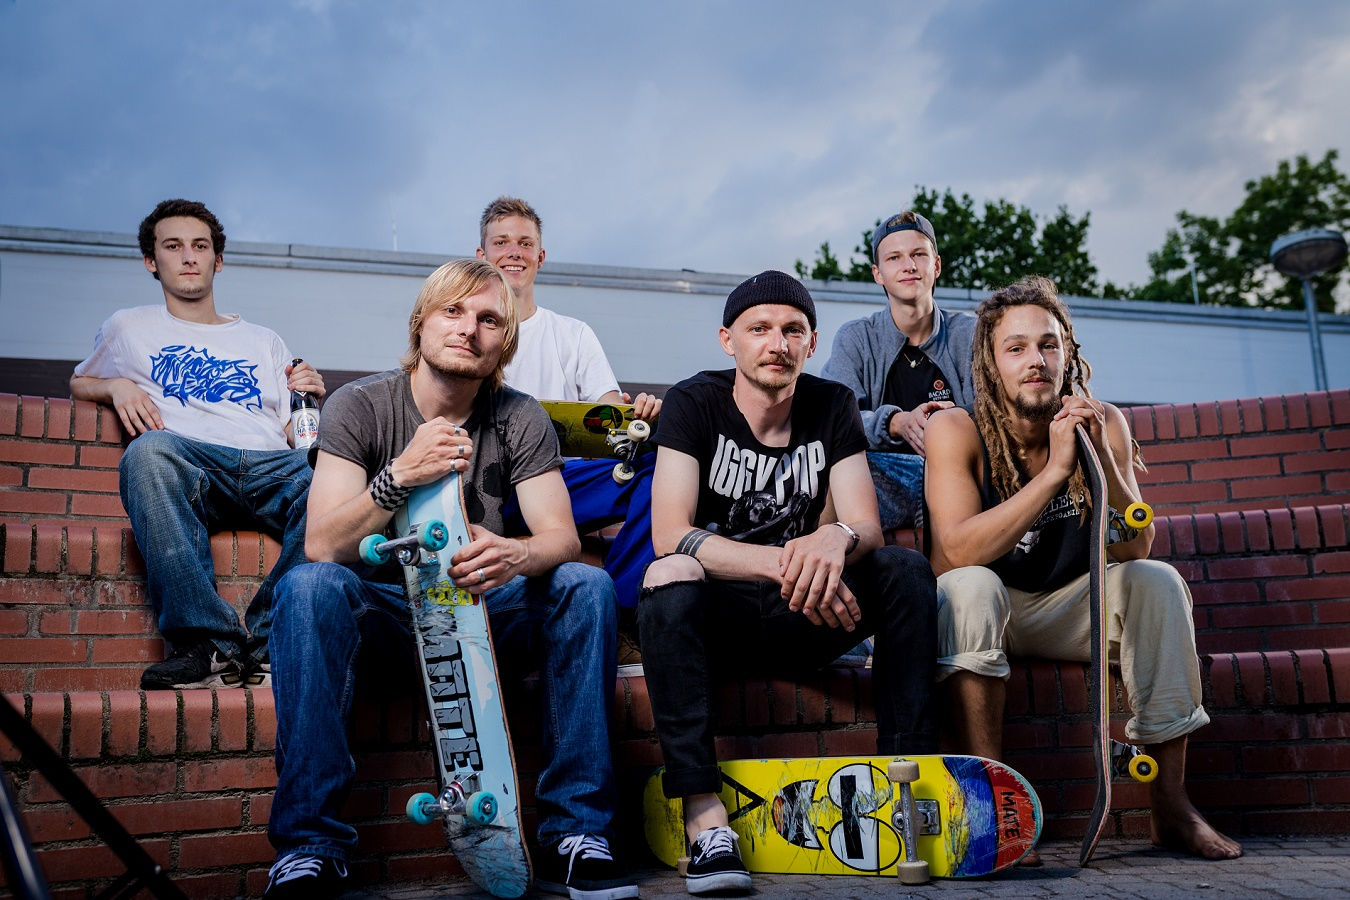 Team MATESKATEBOARDS